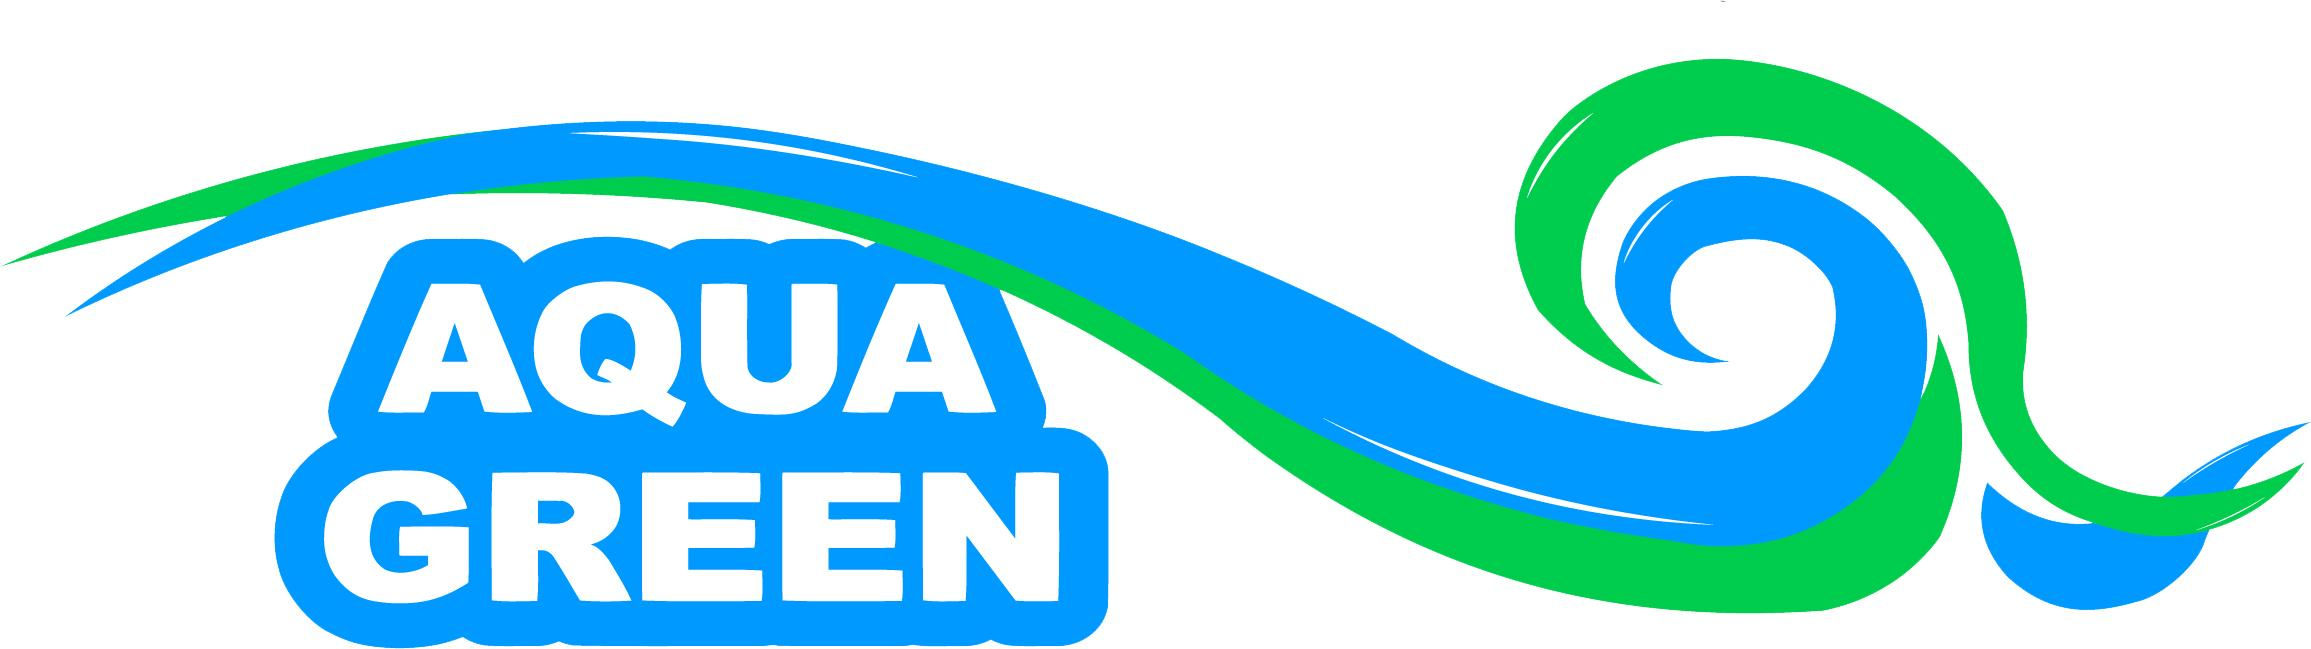 aquagreen logo_23